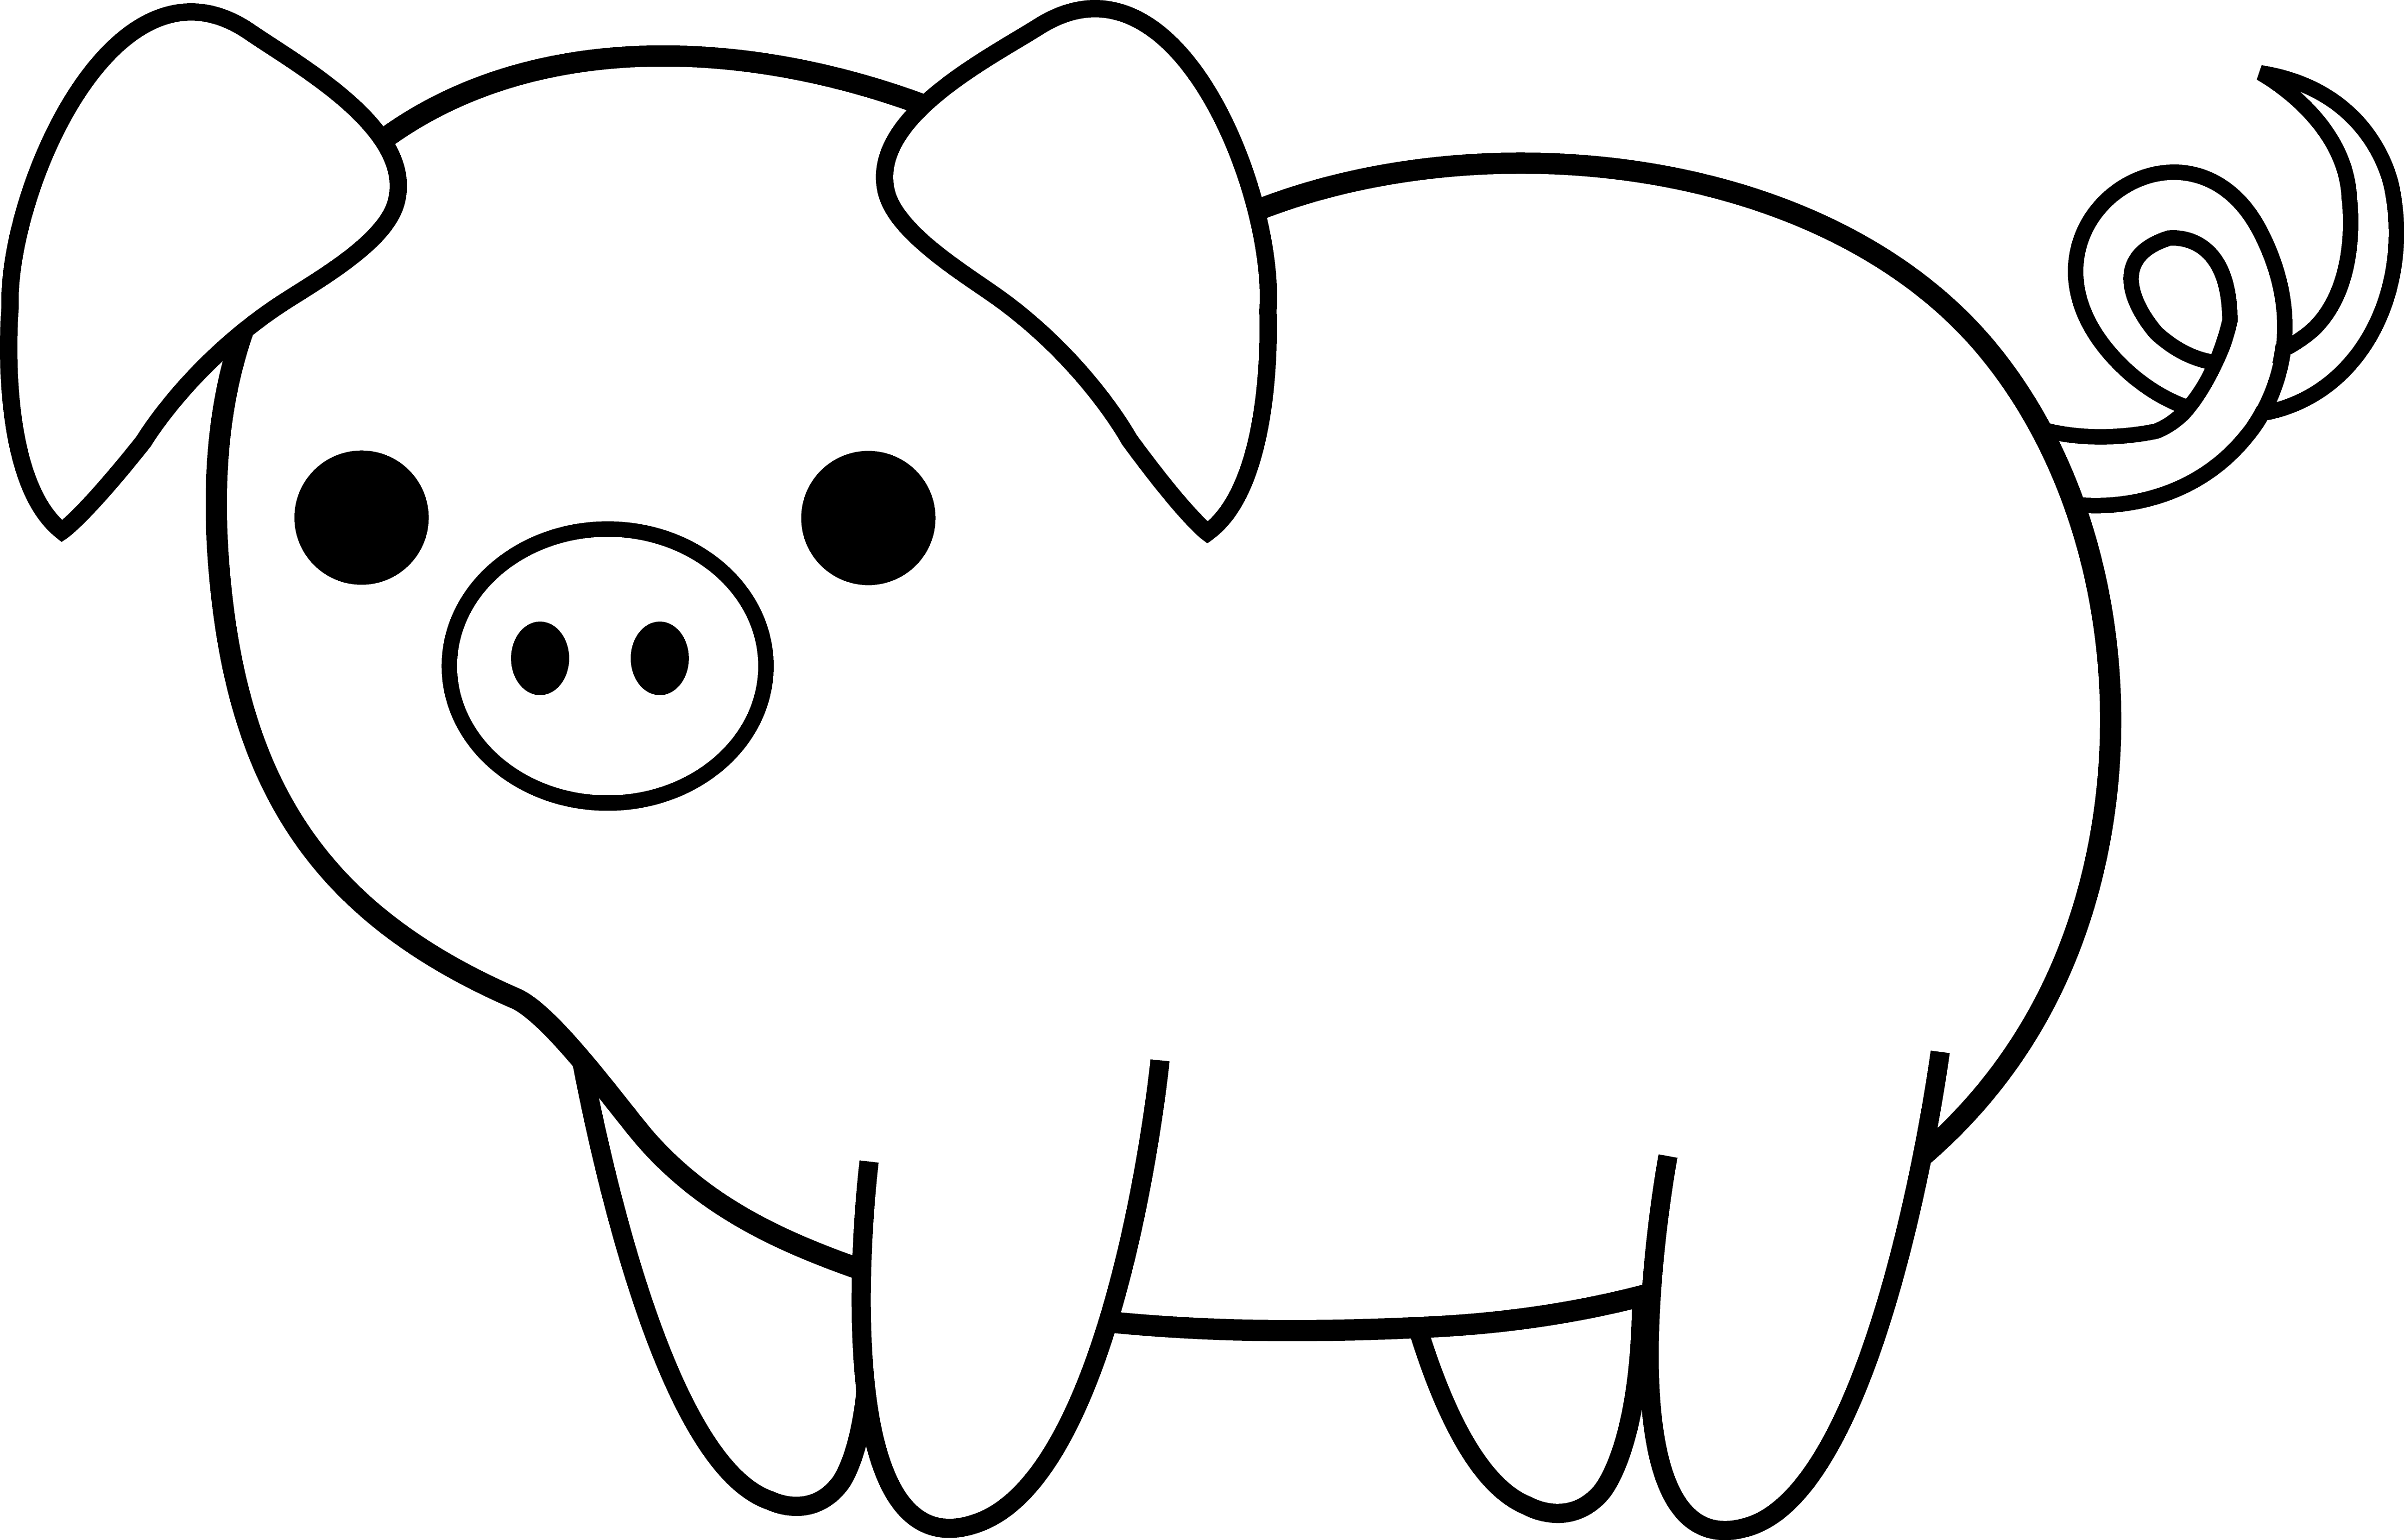 Cute Black and White Pig.